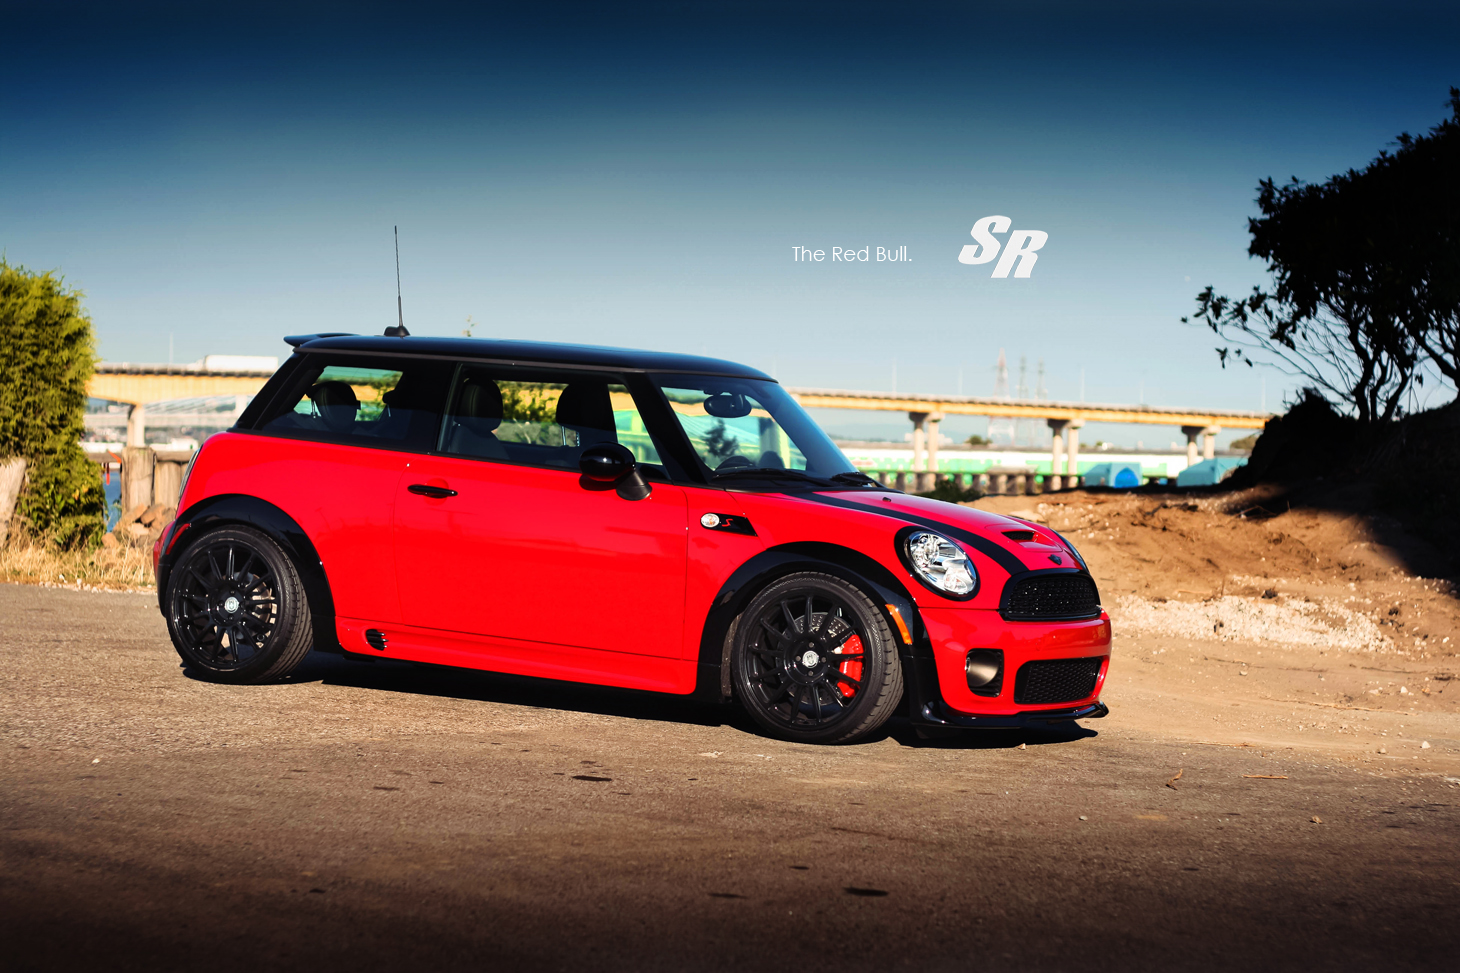 mini cooper s tuning 5 tuning. Black Bedroom Furniture Sets. Home Design Ideas